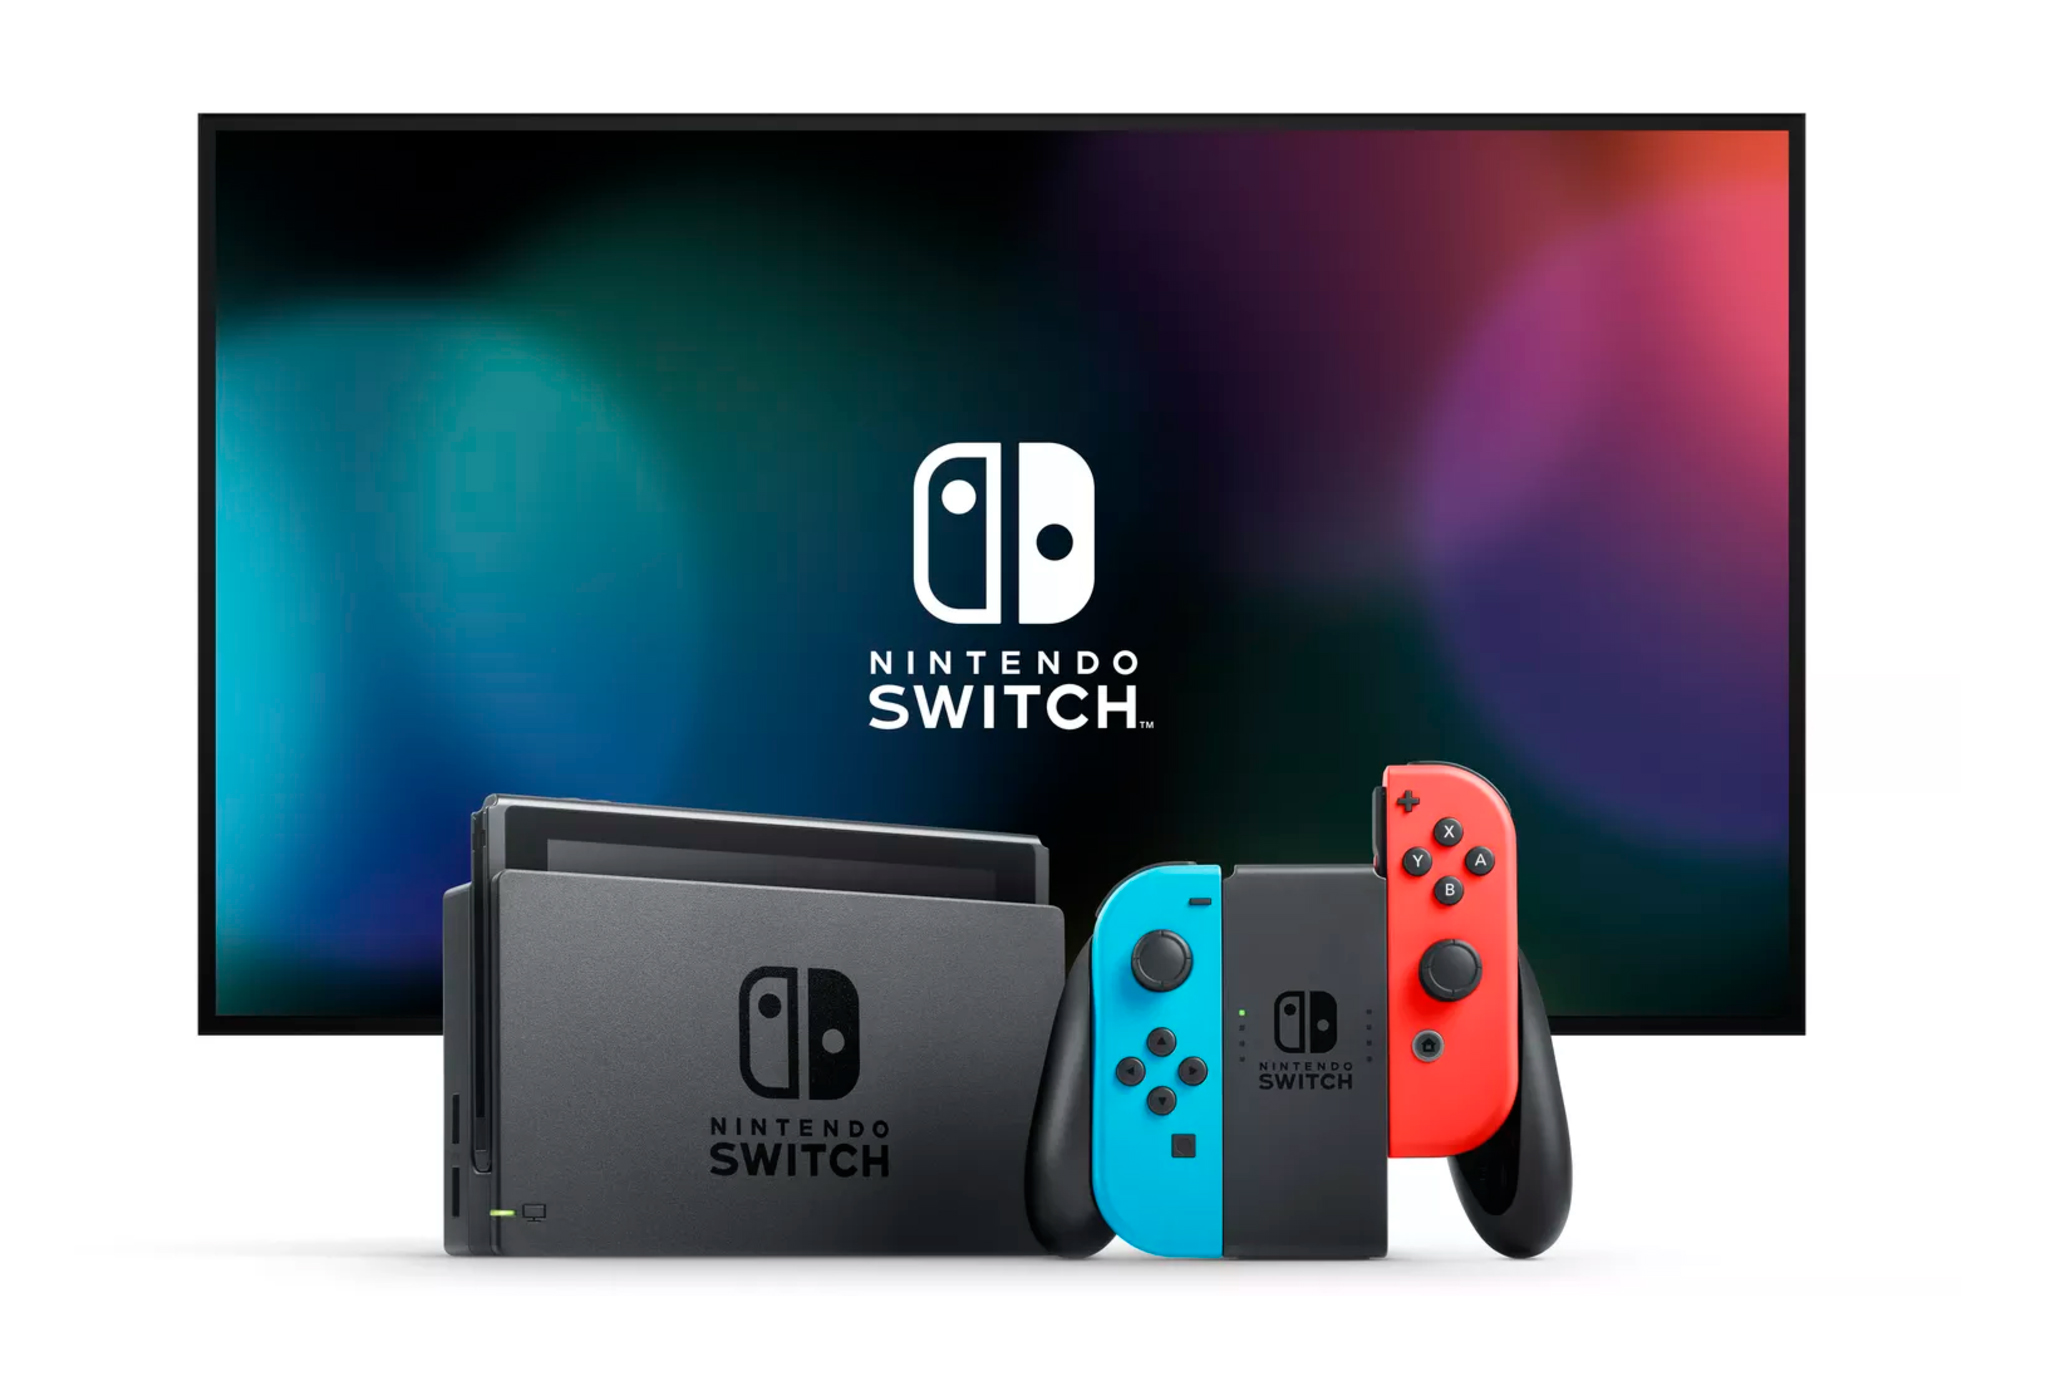 Nintendo Switch Roundup of Features and Release Date Video Games Consoles Mario